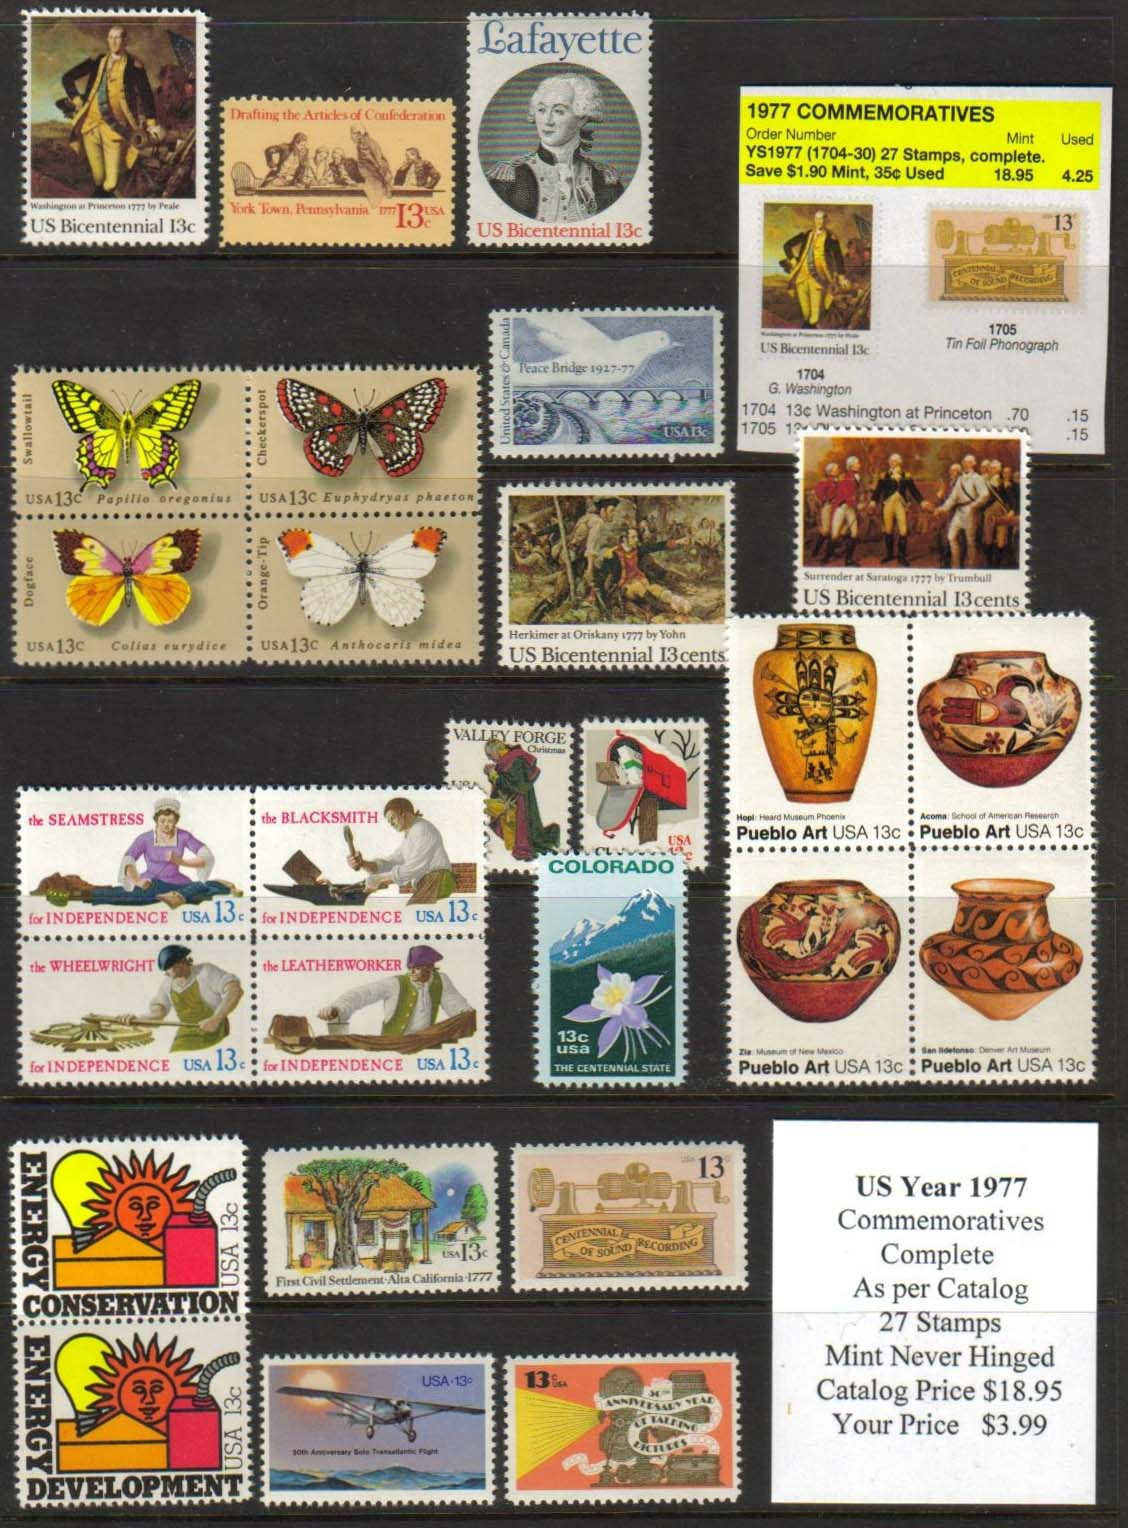 1977 COMMEMORATIVES, 27 STAMPS